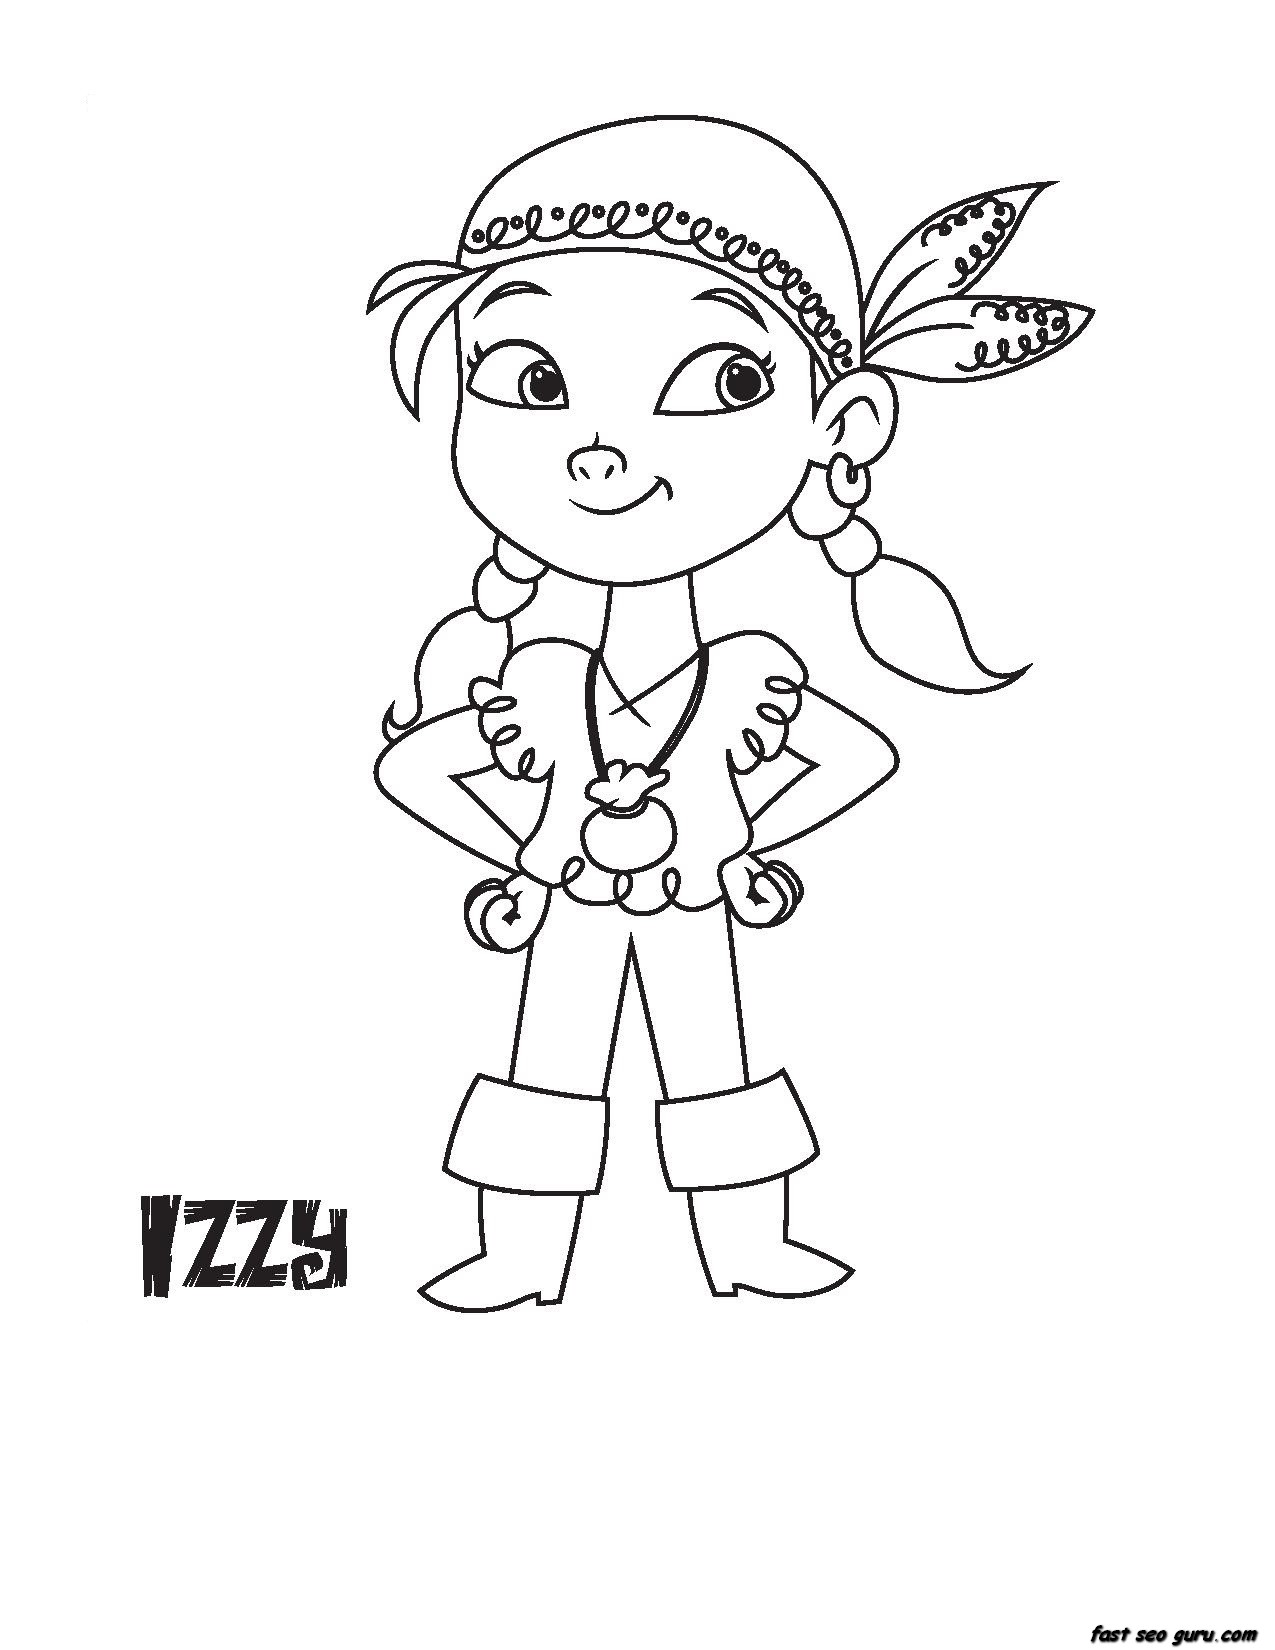 Printable Disney Junior Izzy coloring book pages Printable Coloring Pages For Kids